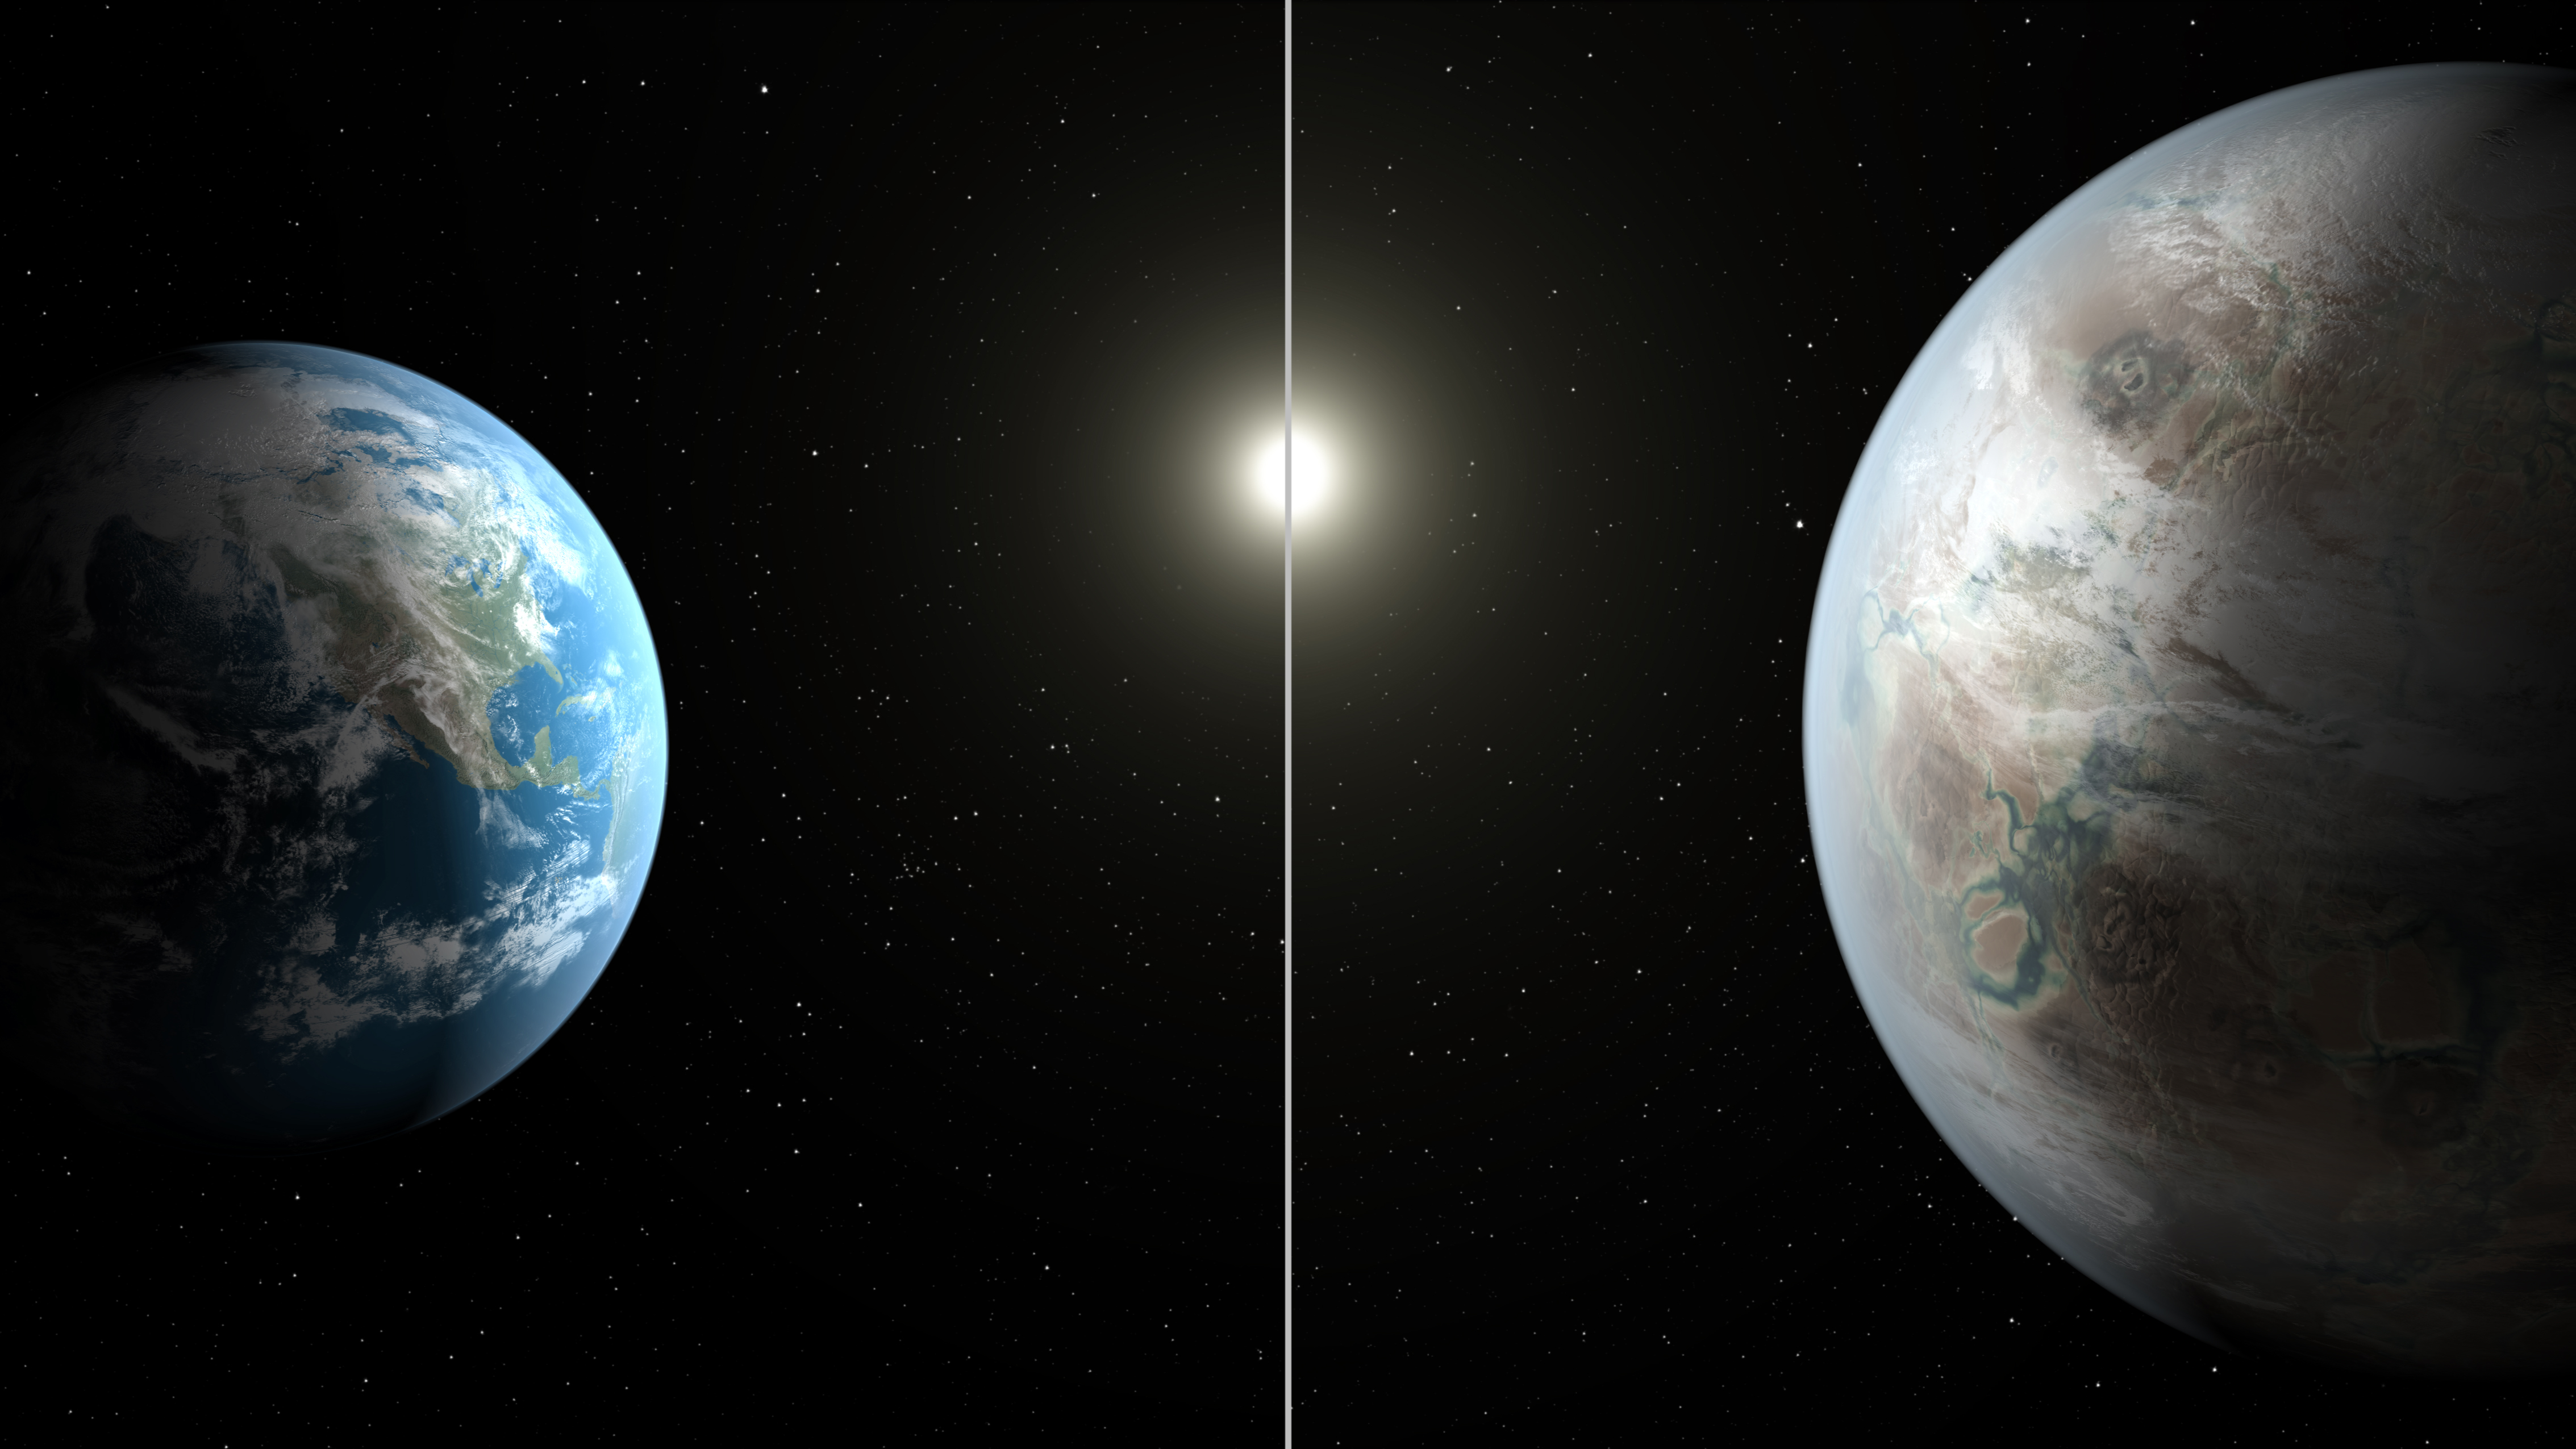 Earth and Kepler-452b - Artistic Concept